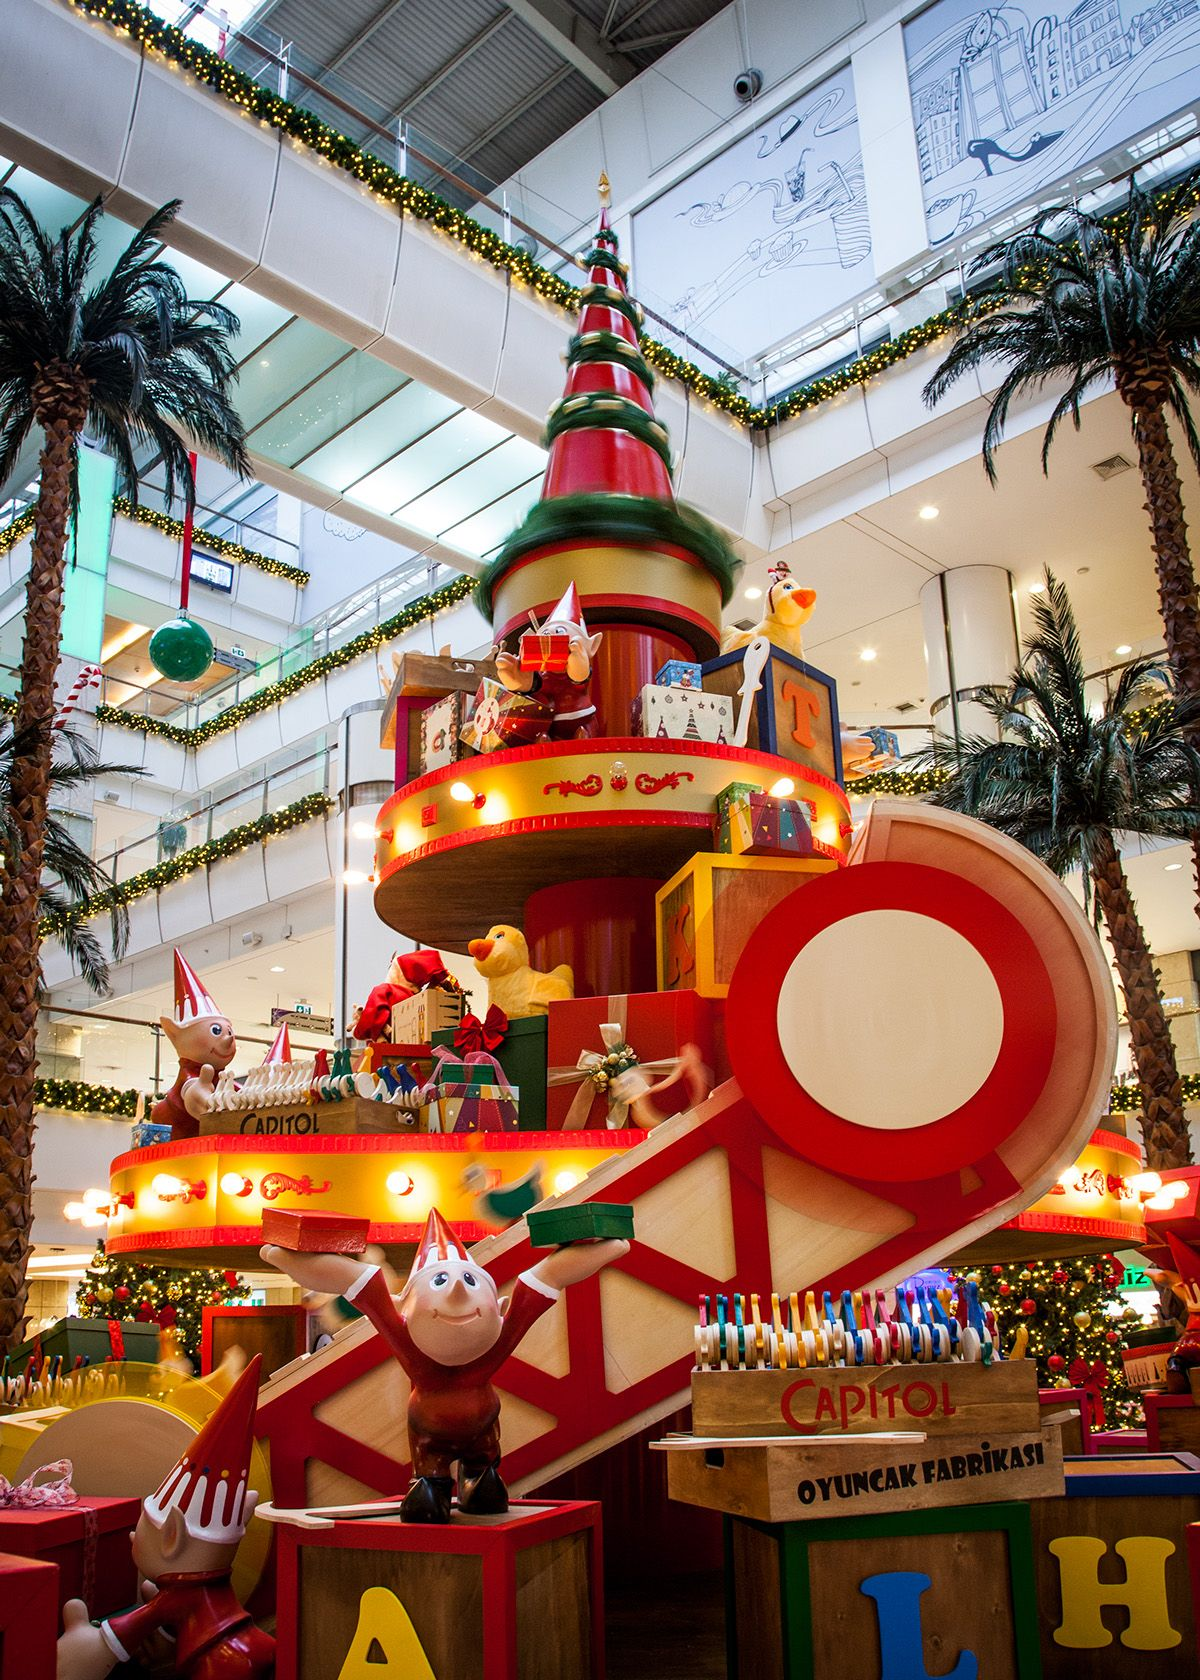 Capitol Toy's Factory / New Year Decoration on Behance ...